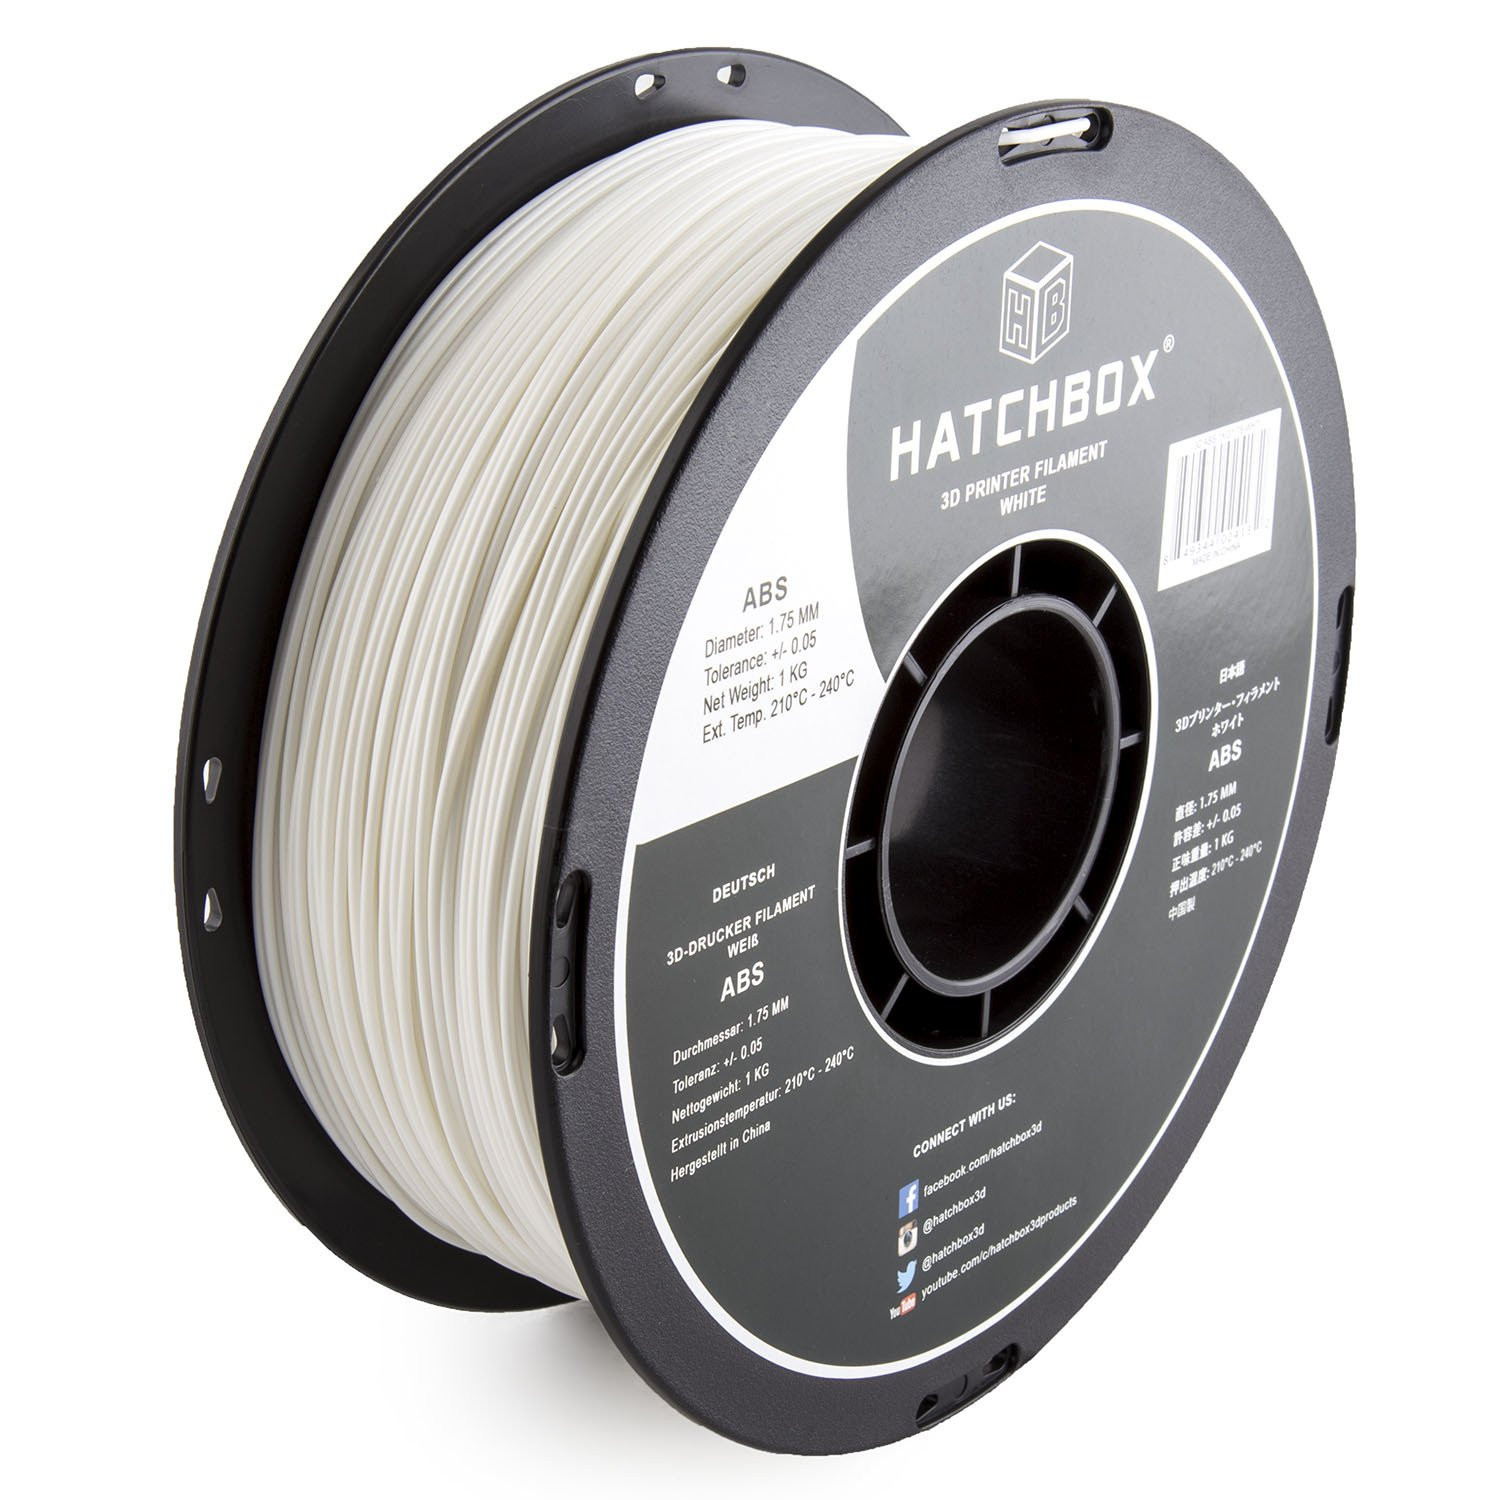 Hatchbox ABS Filament 1.75mm